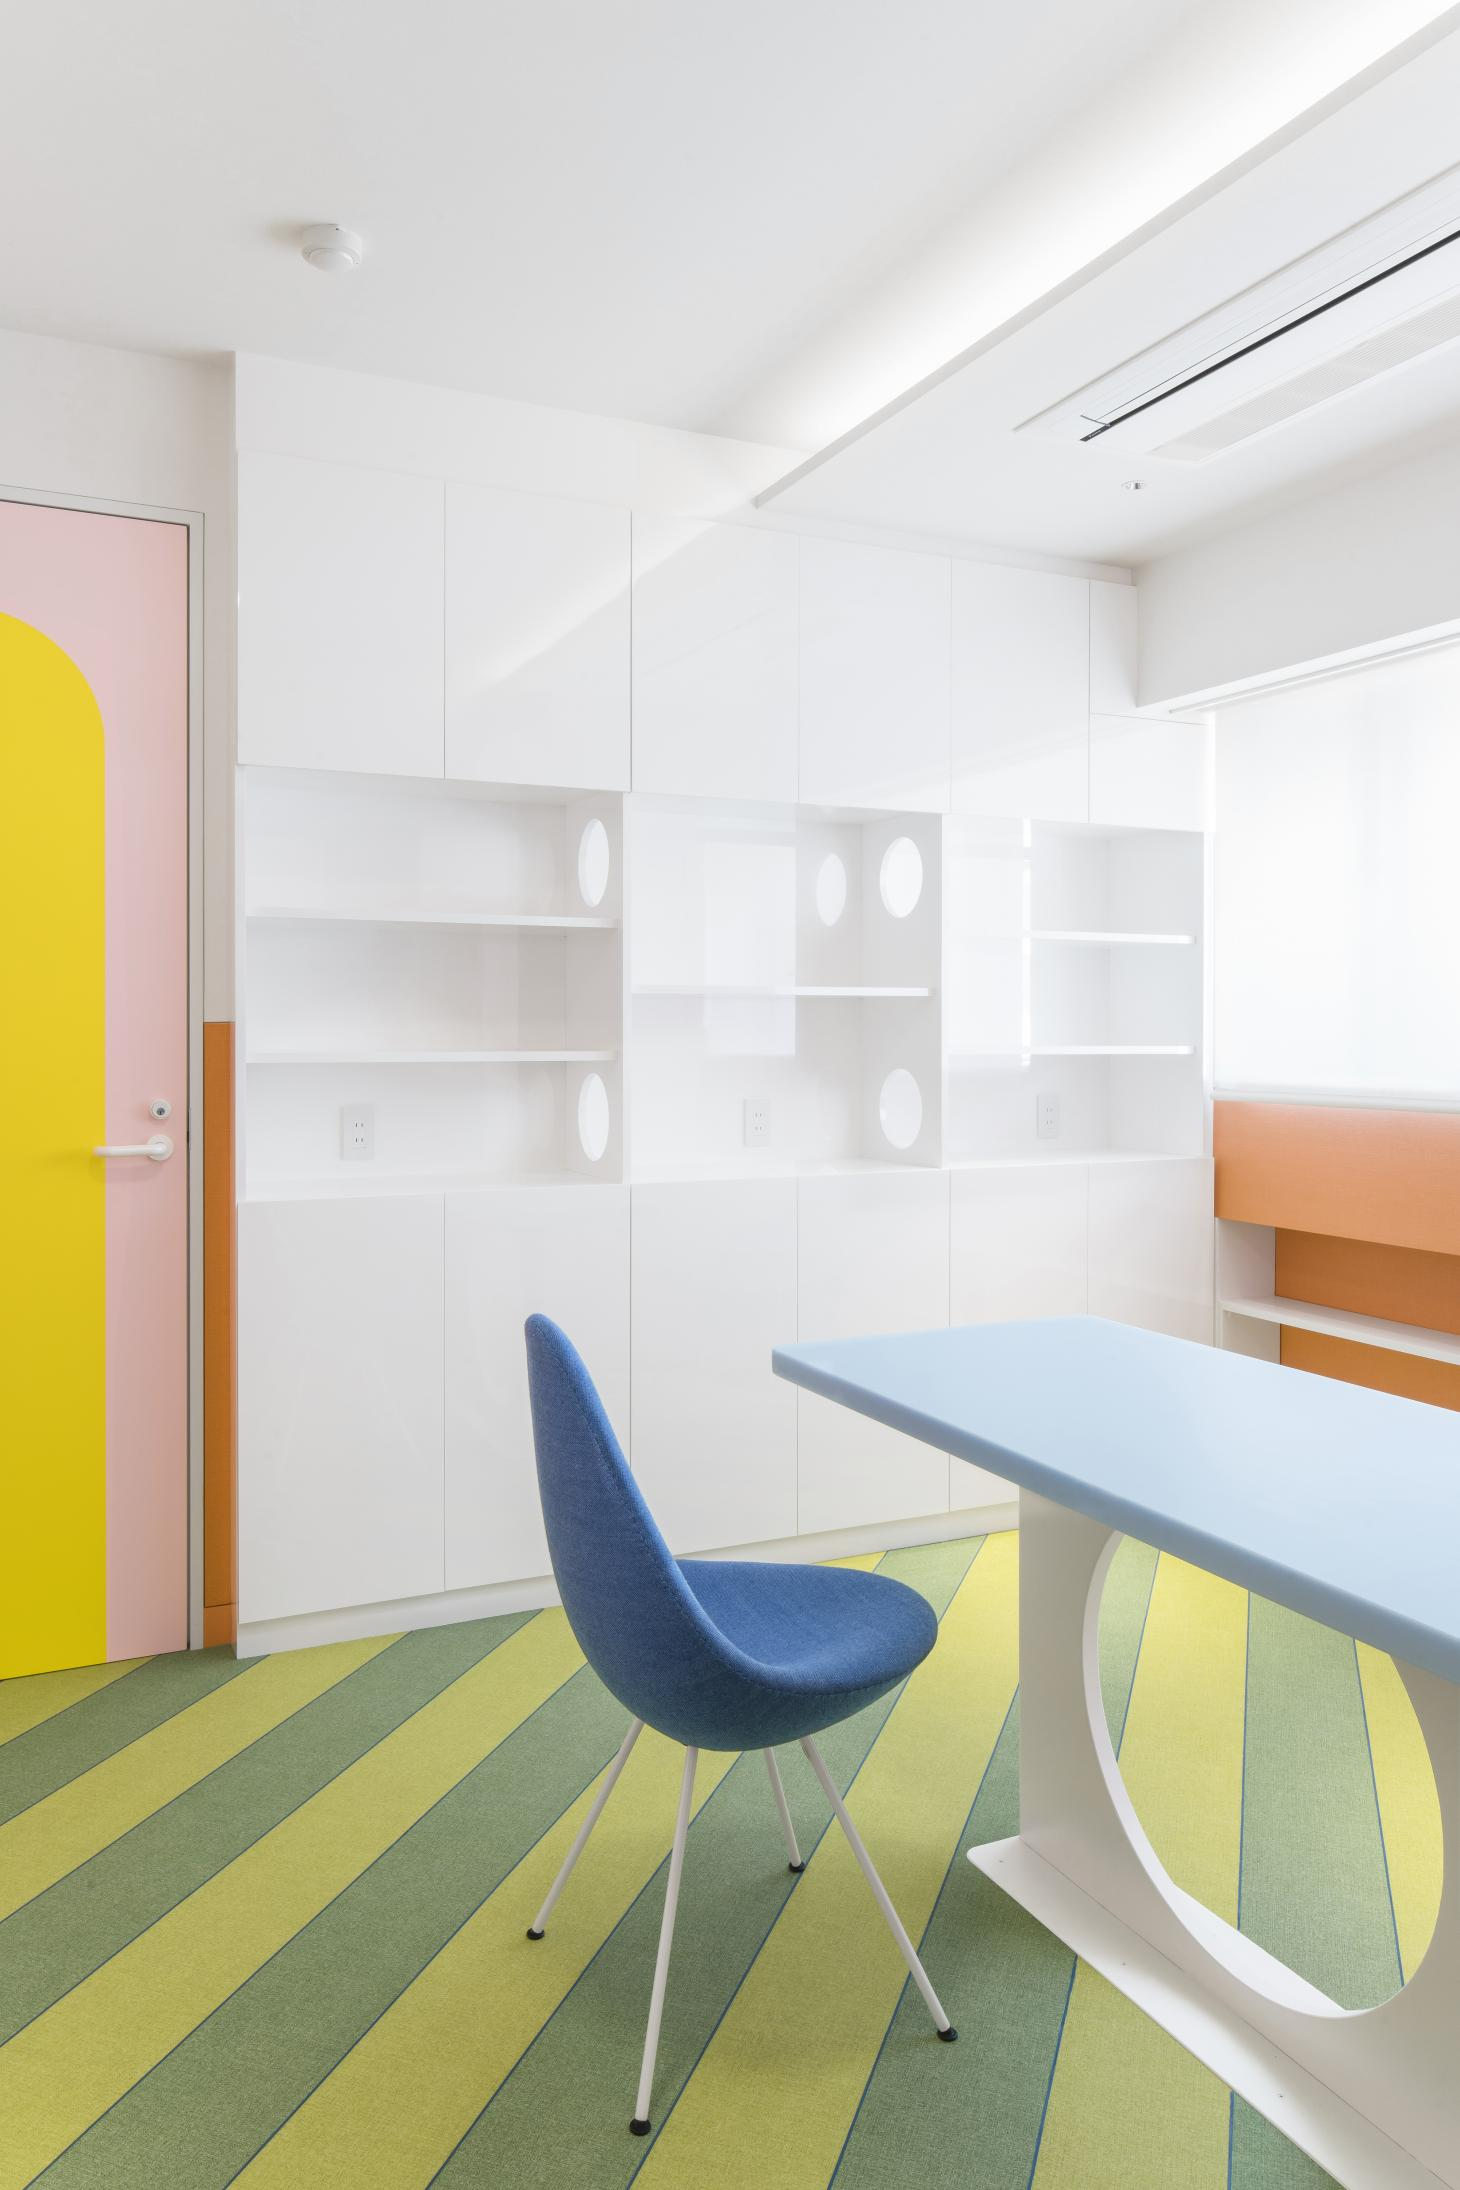 Adam Nathaniel Furman designs Tokyo apartment | Wallpaper*